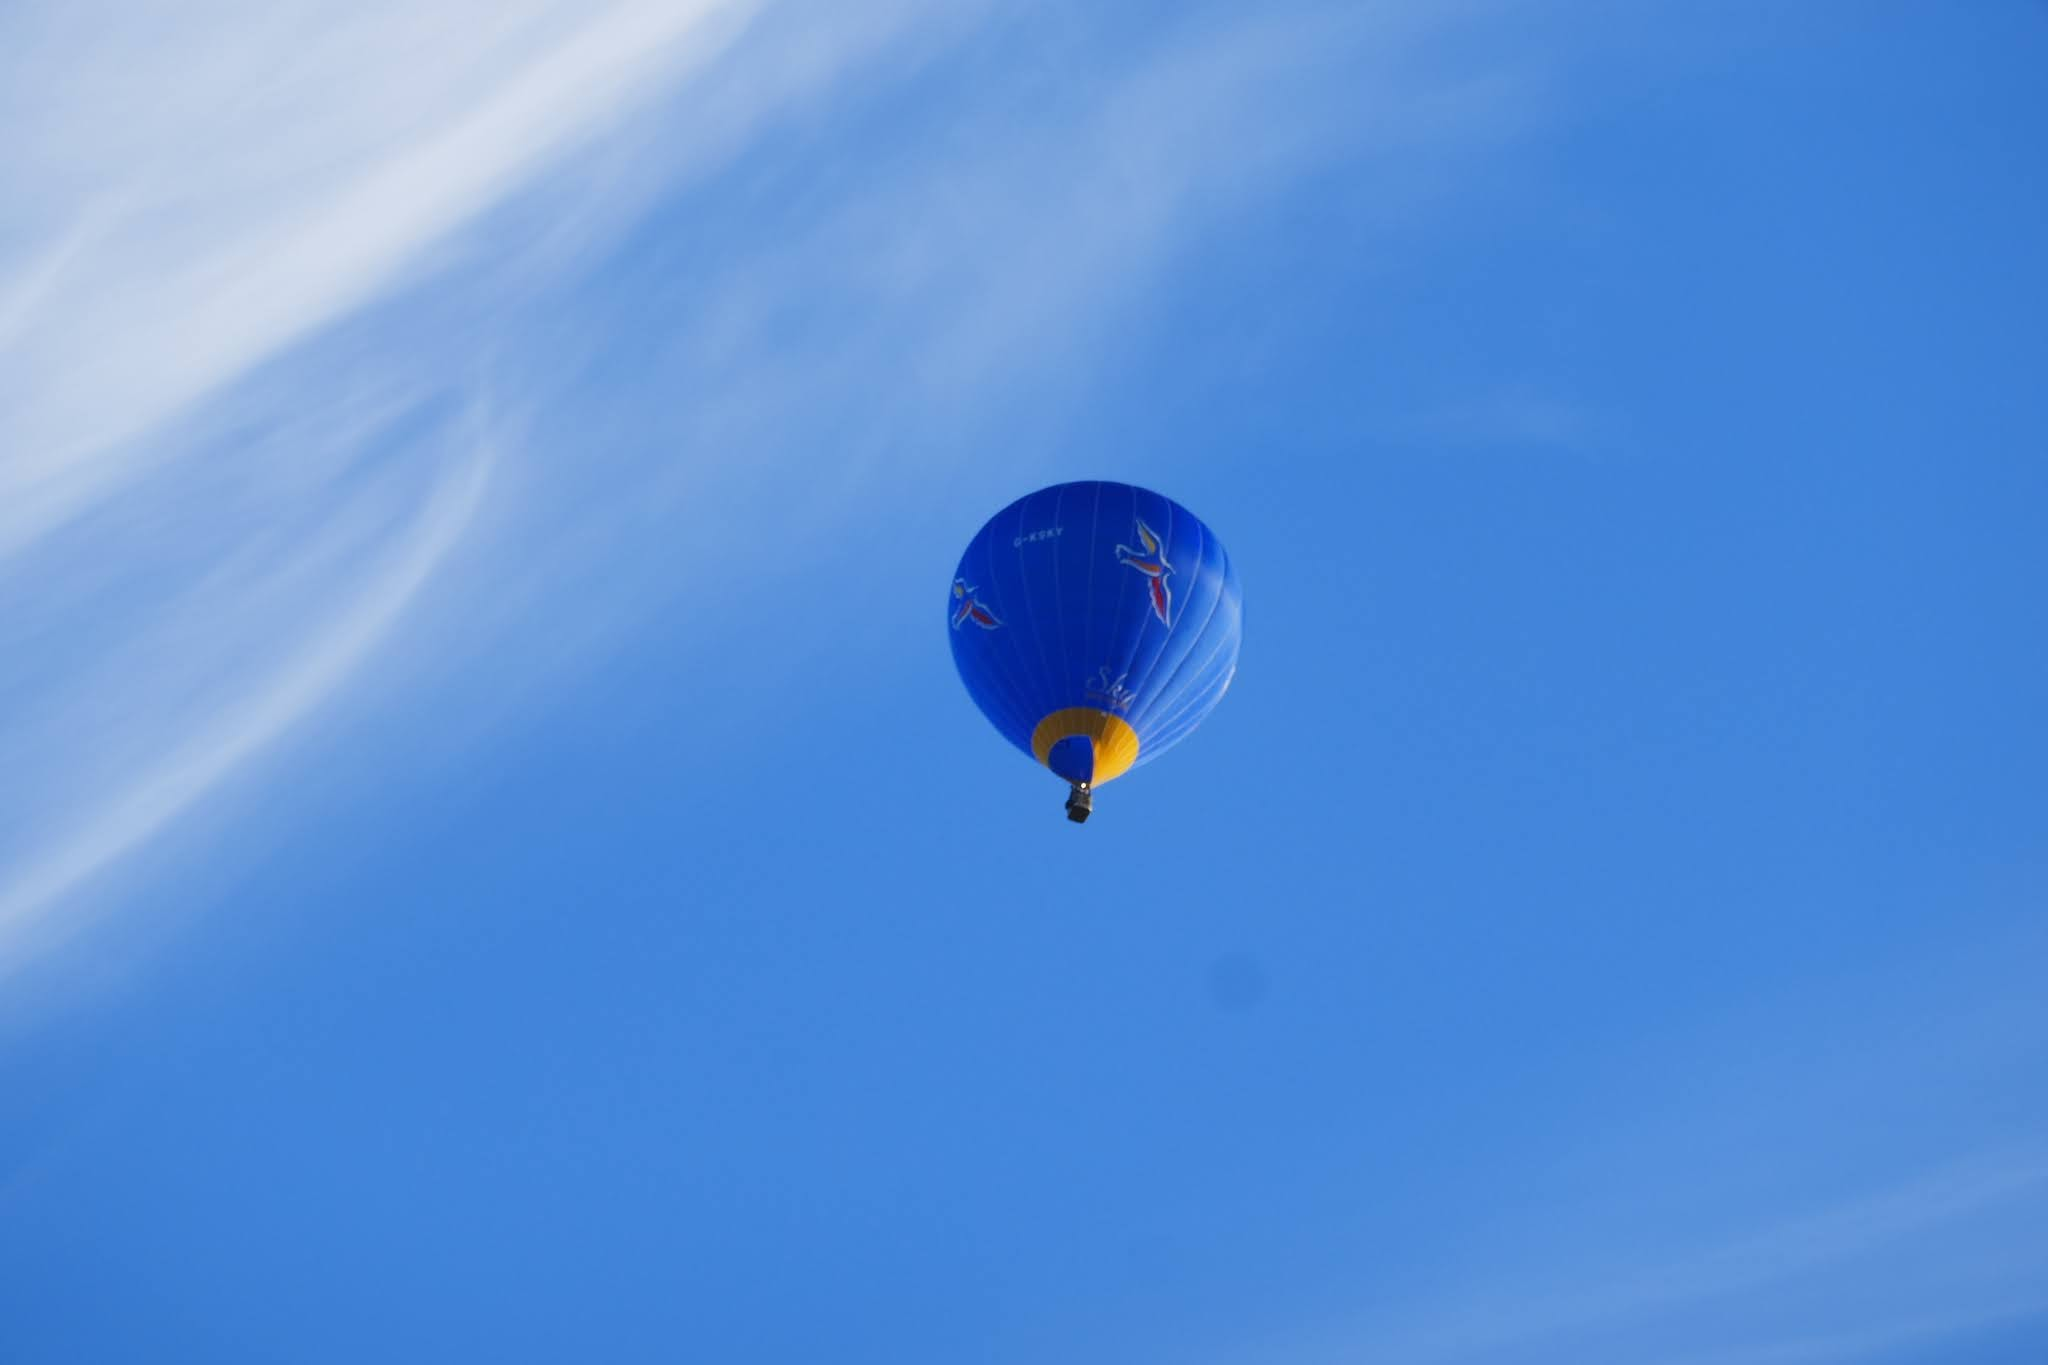 A Ballon just appeared in the blue sky while we were having a braai.